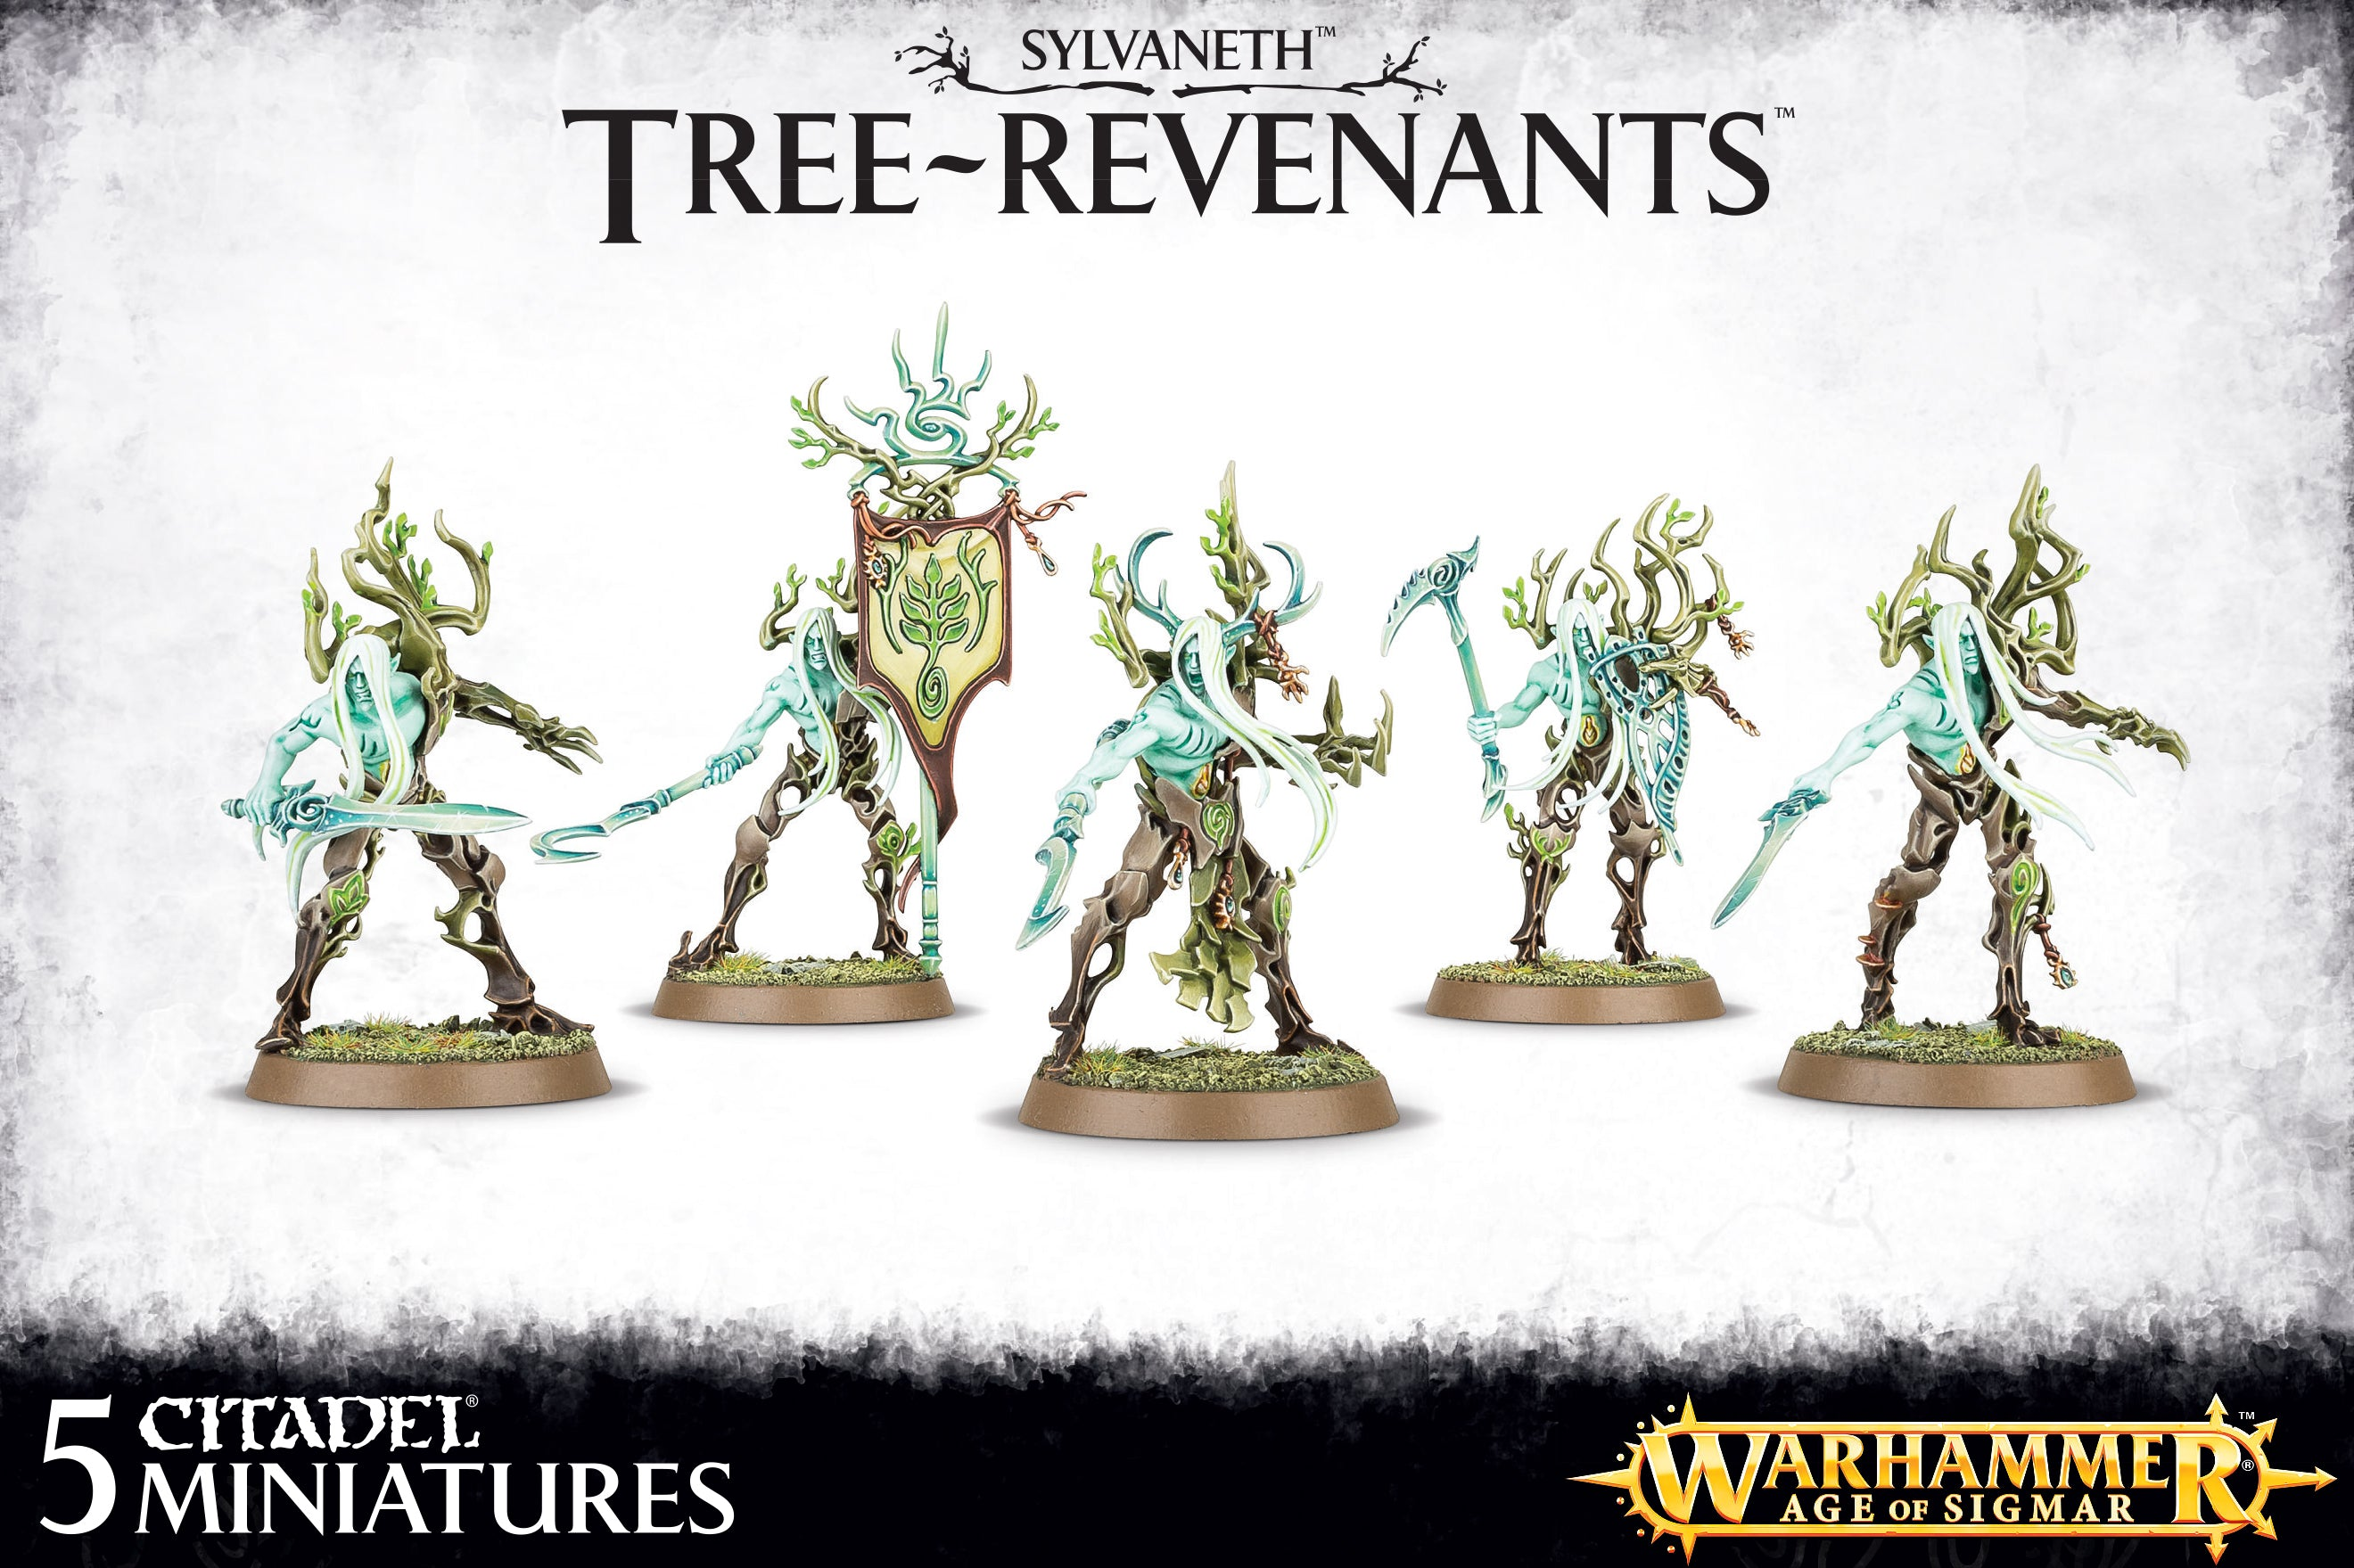 AGE; TREE-REVENANTS